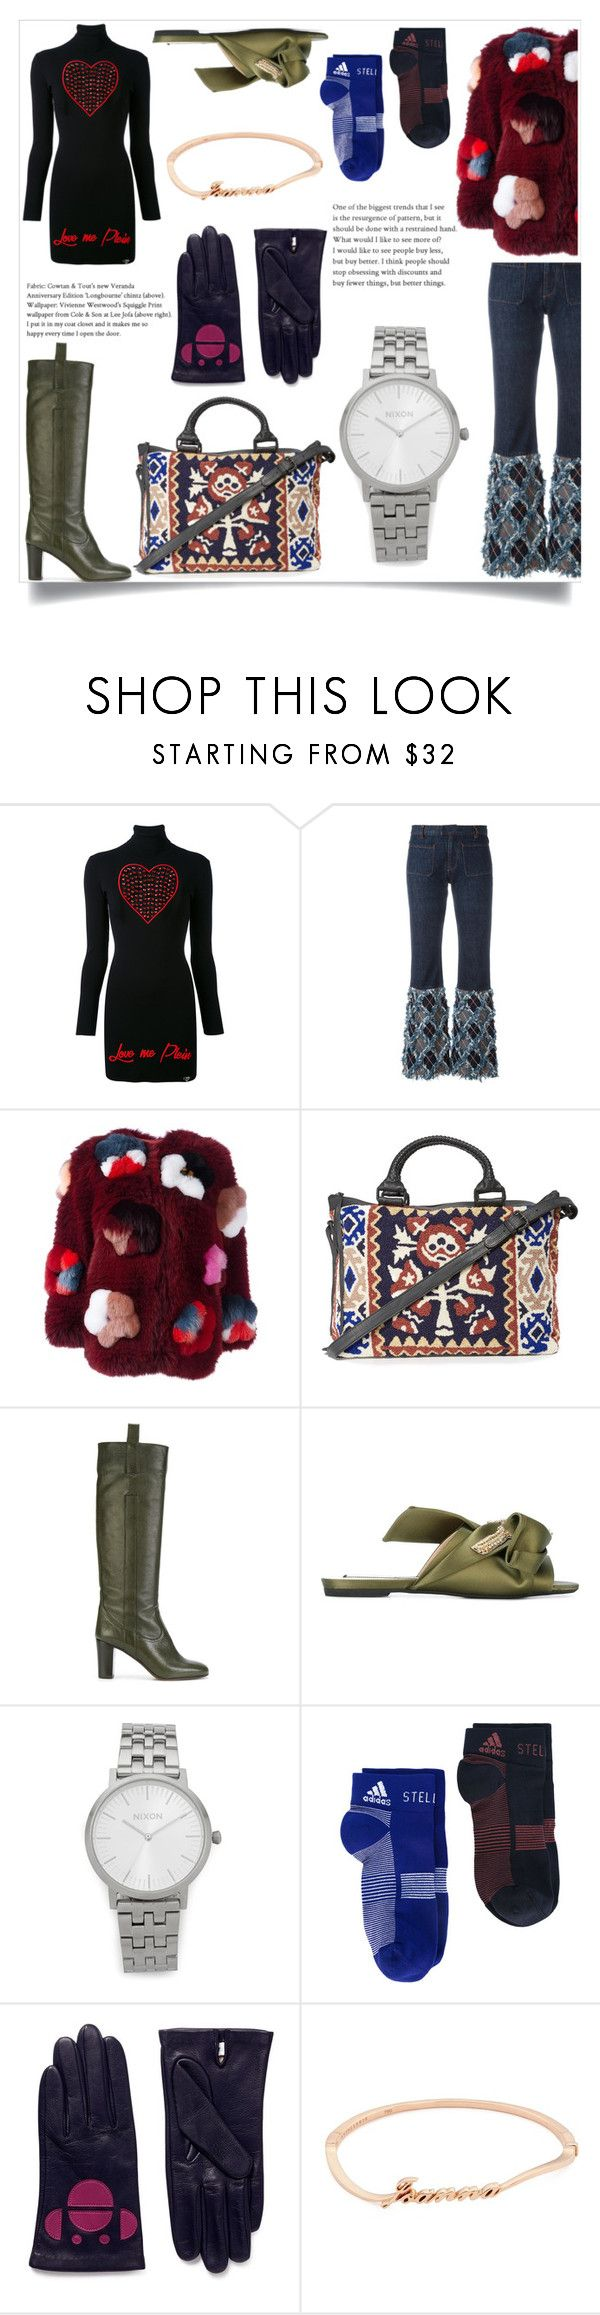 """""""Fashion :by look and feel"""" by gloriaruth-807 ❤ liked on Polyvore featuring Philipp Plein, Jean-Paul Gaultier, Fendi, Cleobella, L'Autre Chose, adidas, Aristide and Anyallerie"""